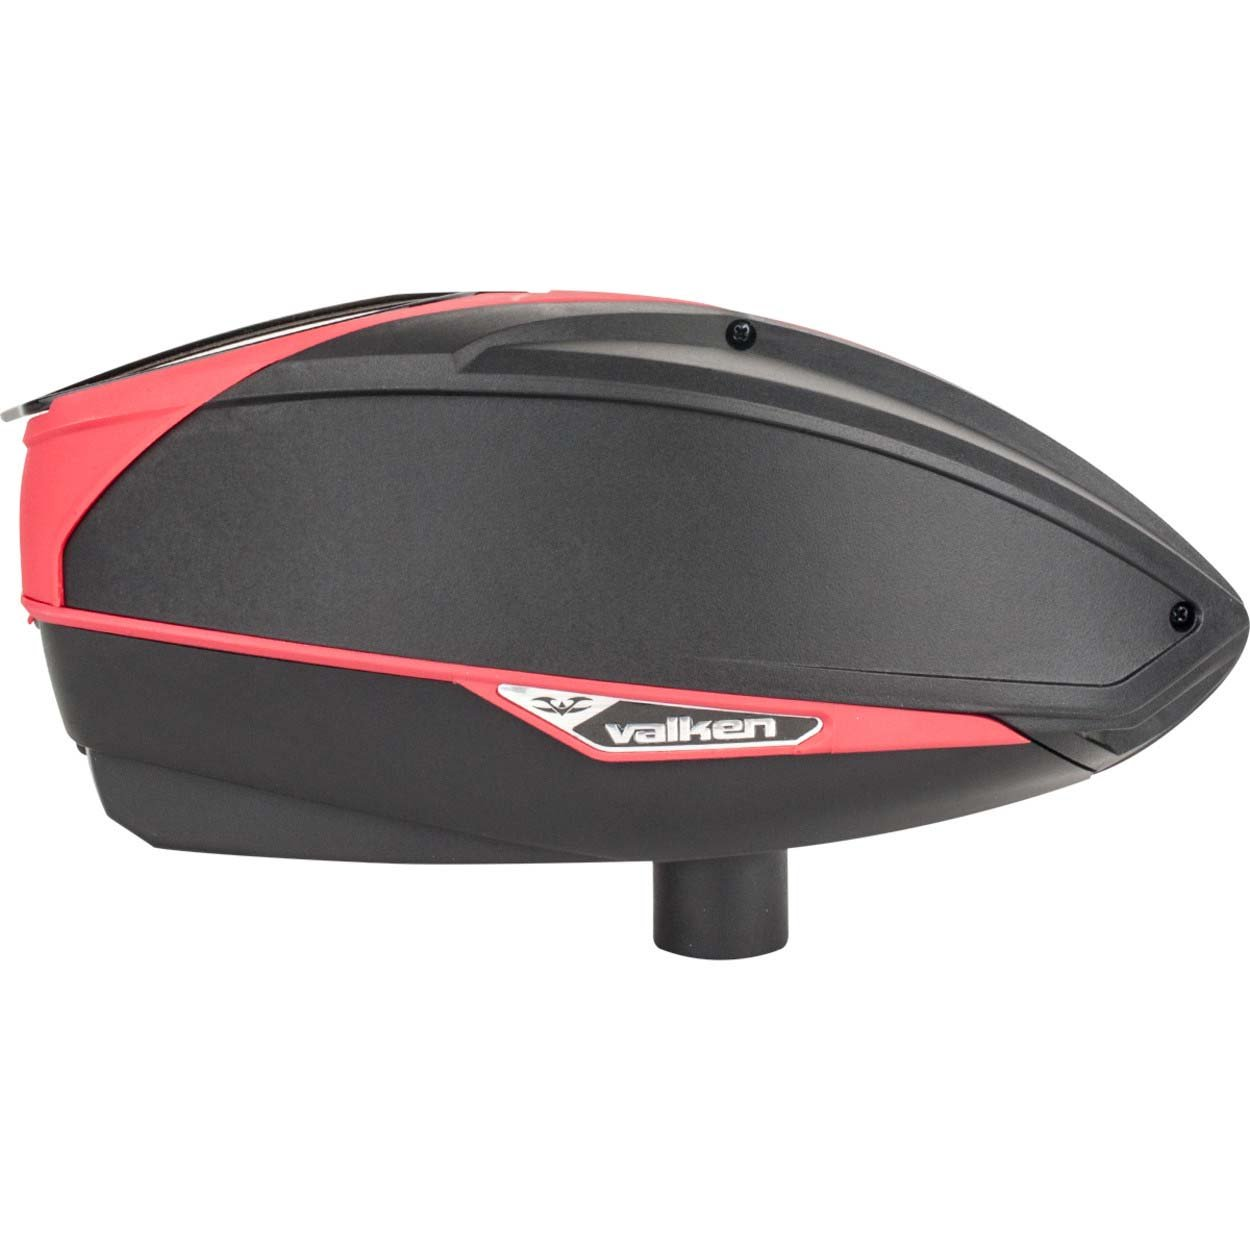 Valken Paintball VSL Tournament Electronic Loader - Black/Red by Valken